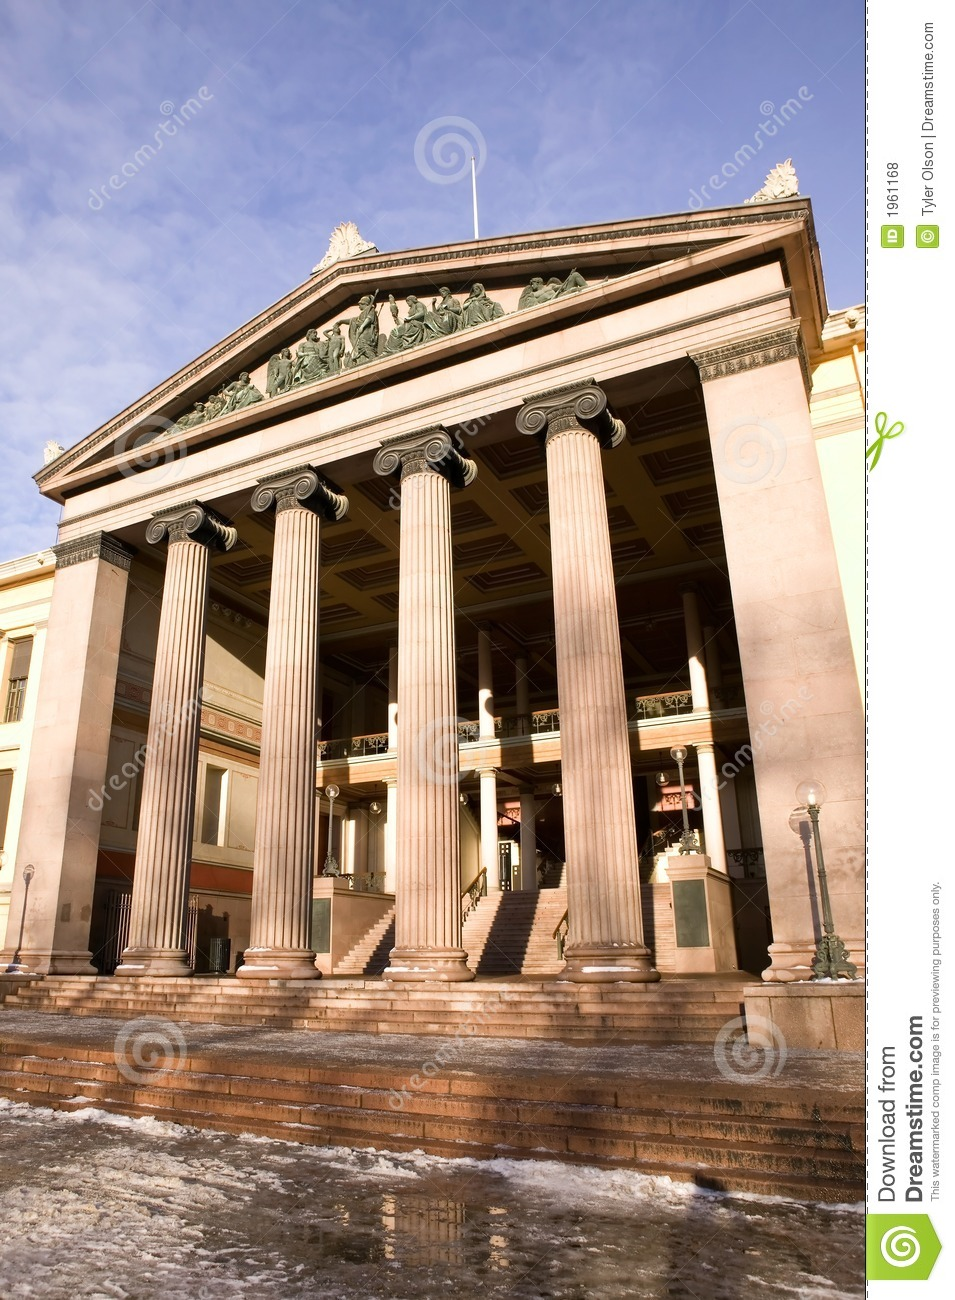 greek ionic column royalty free stock photos image 1961168